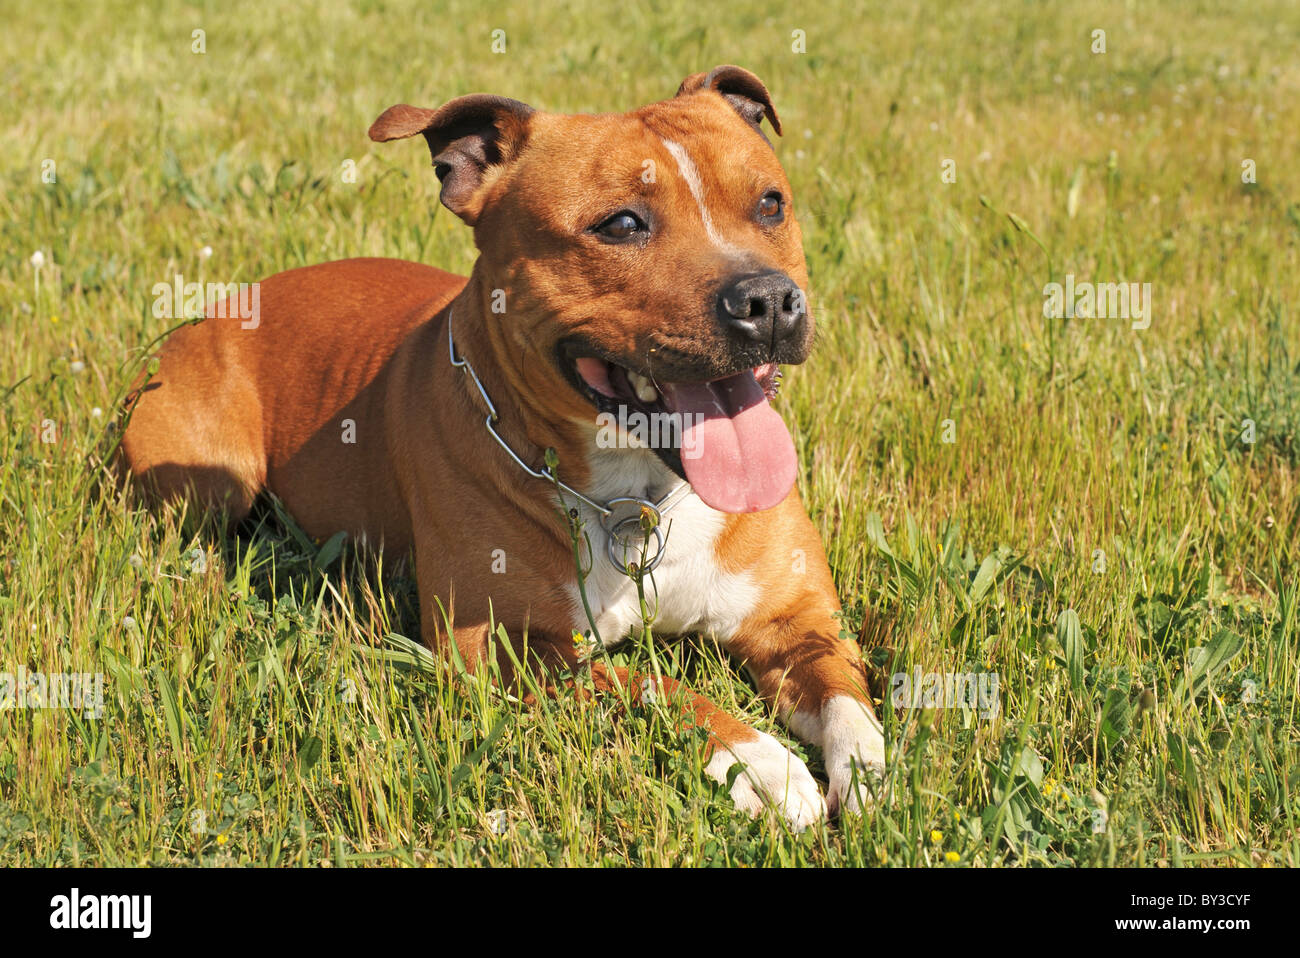 portrait of a staffordshire bull terrier laid down in the grass - Stock Image